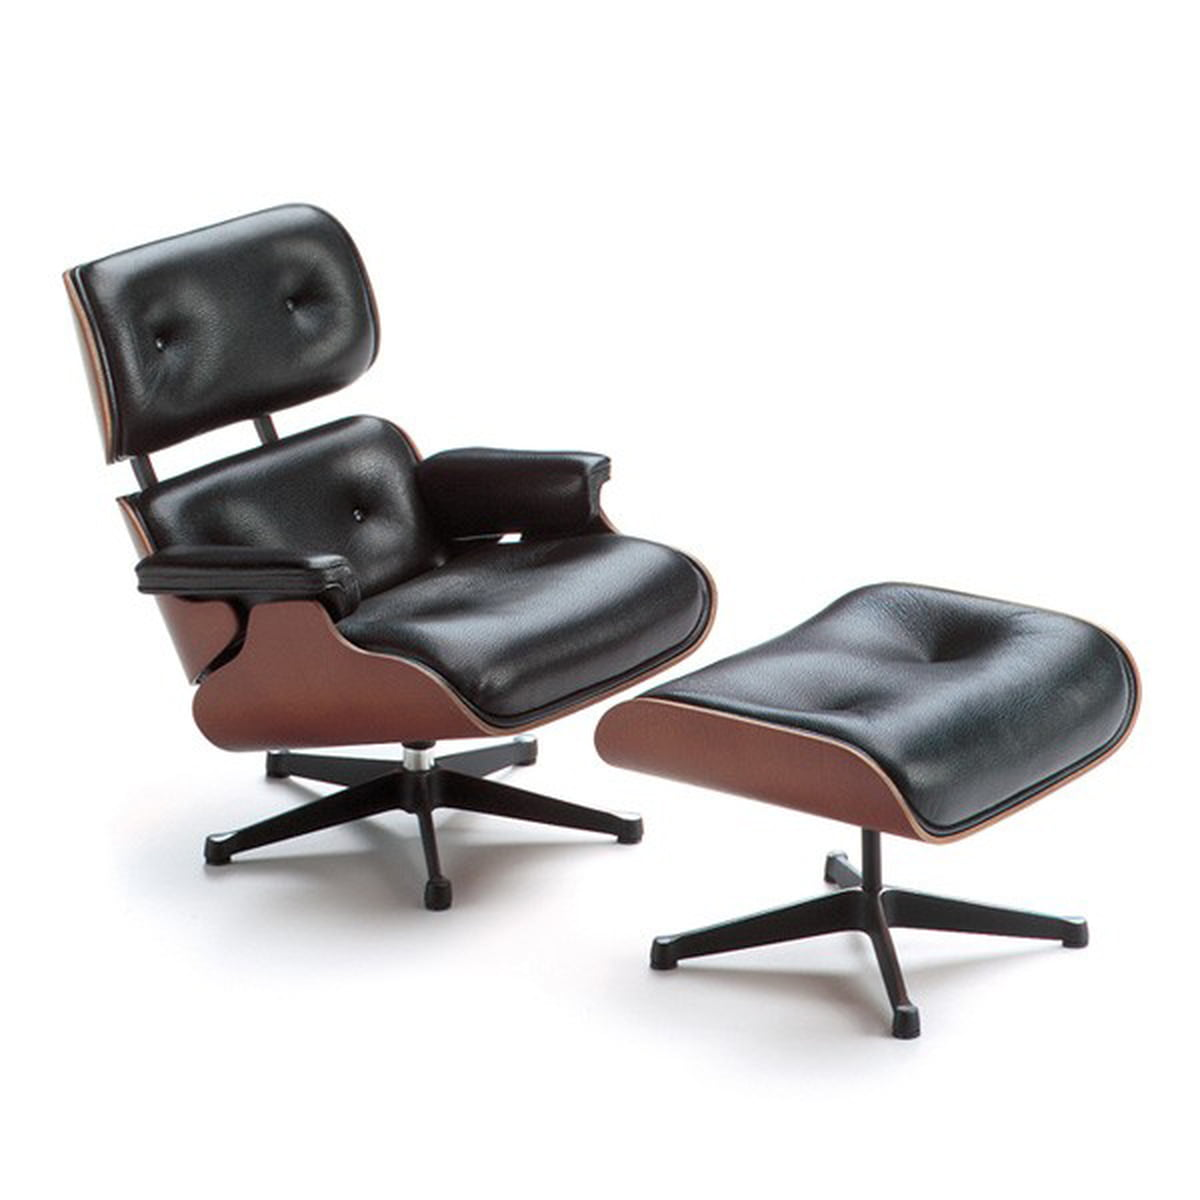 Miniature lounge chair ottoman by vitra for Vitra lounge chair nachbau